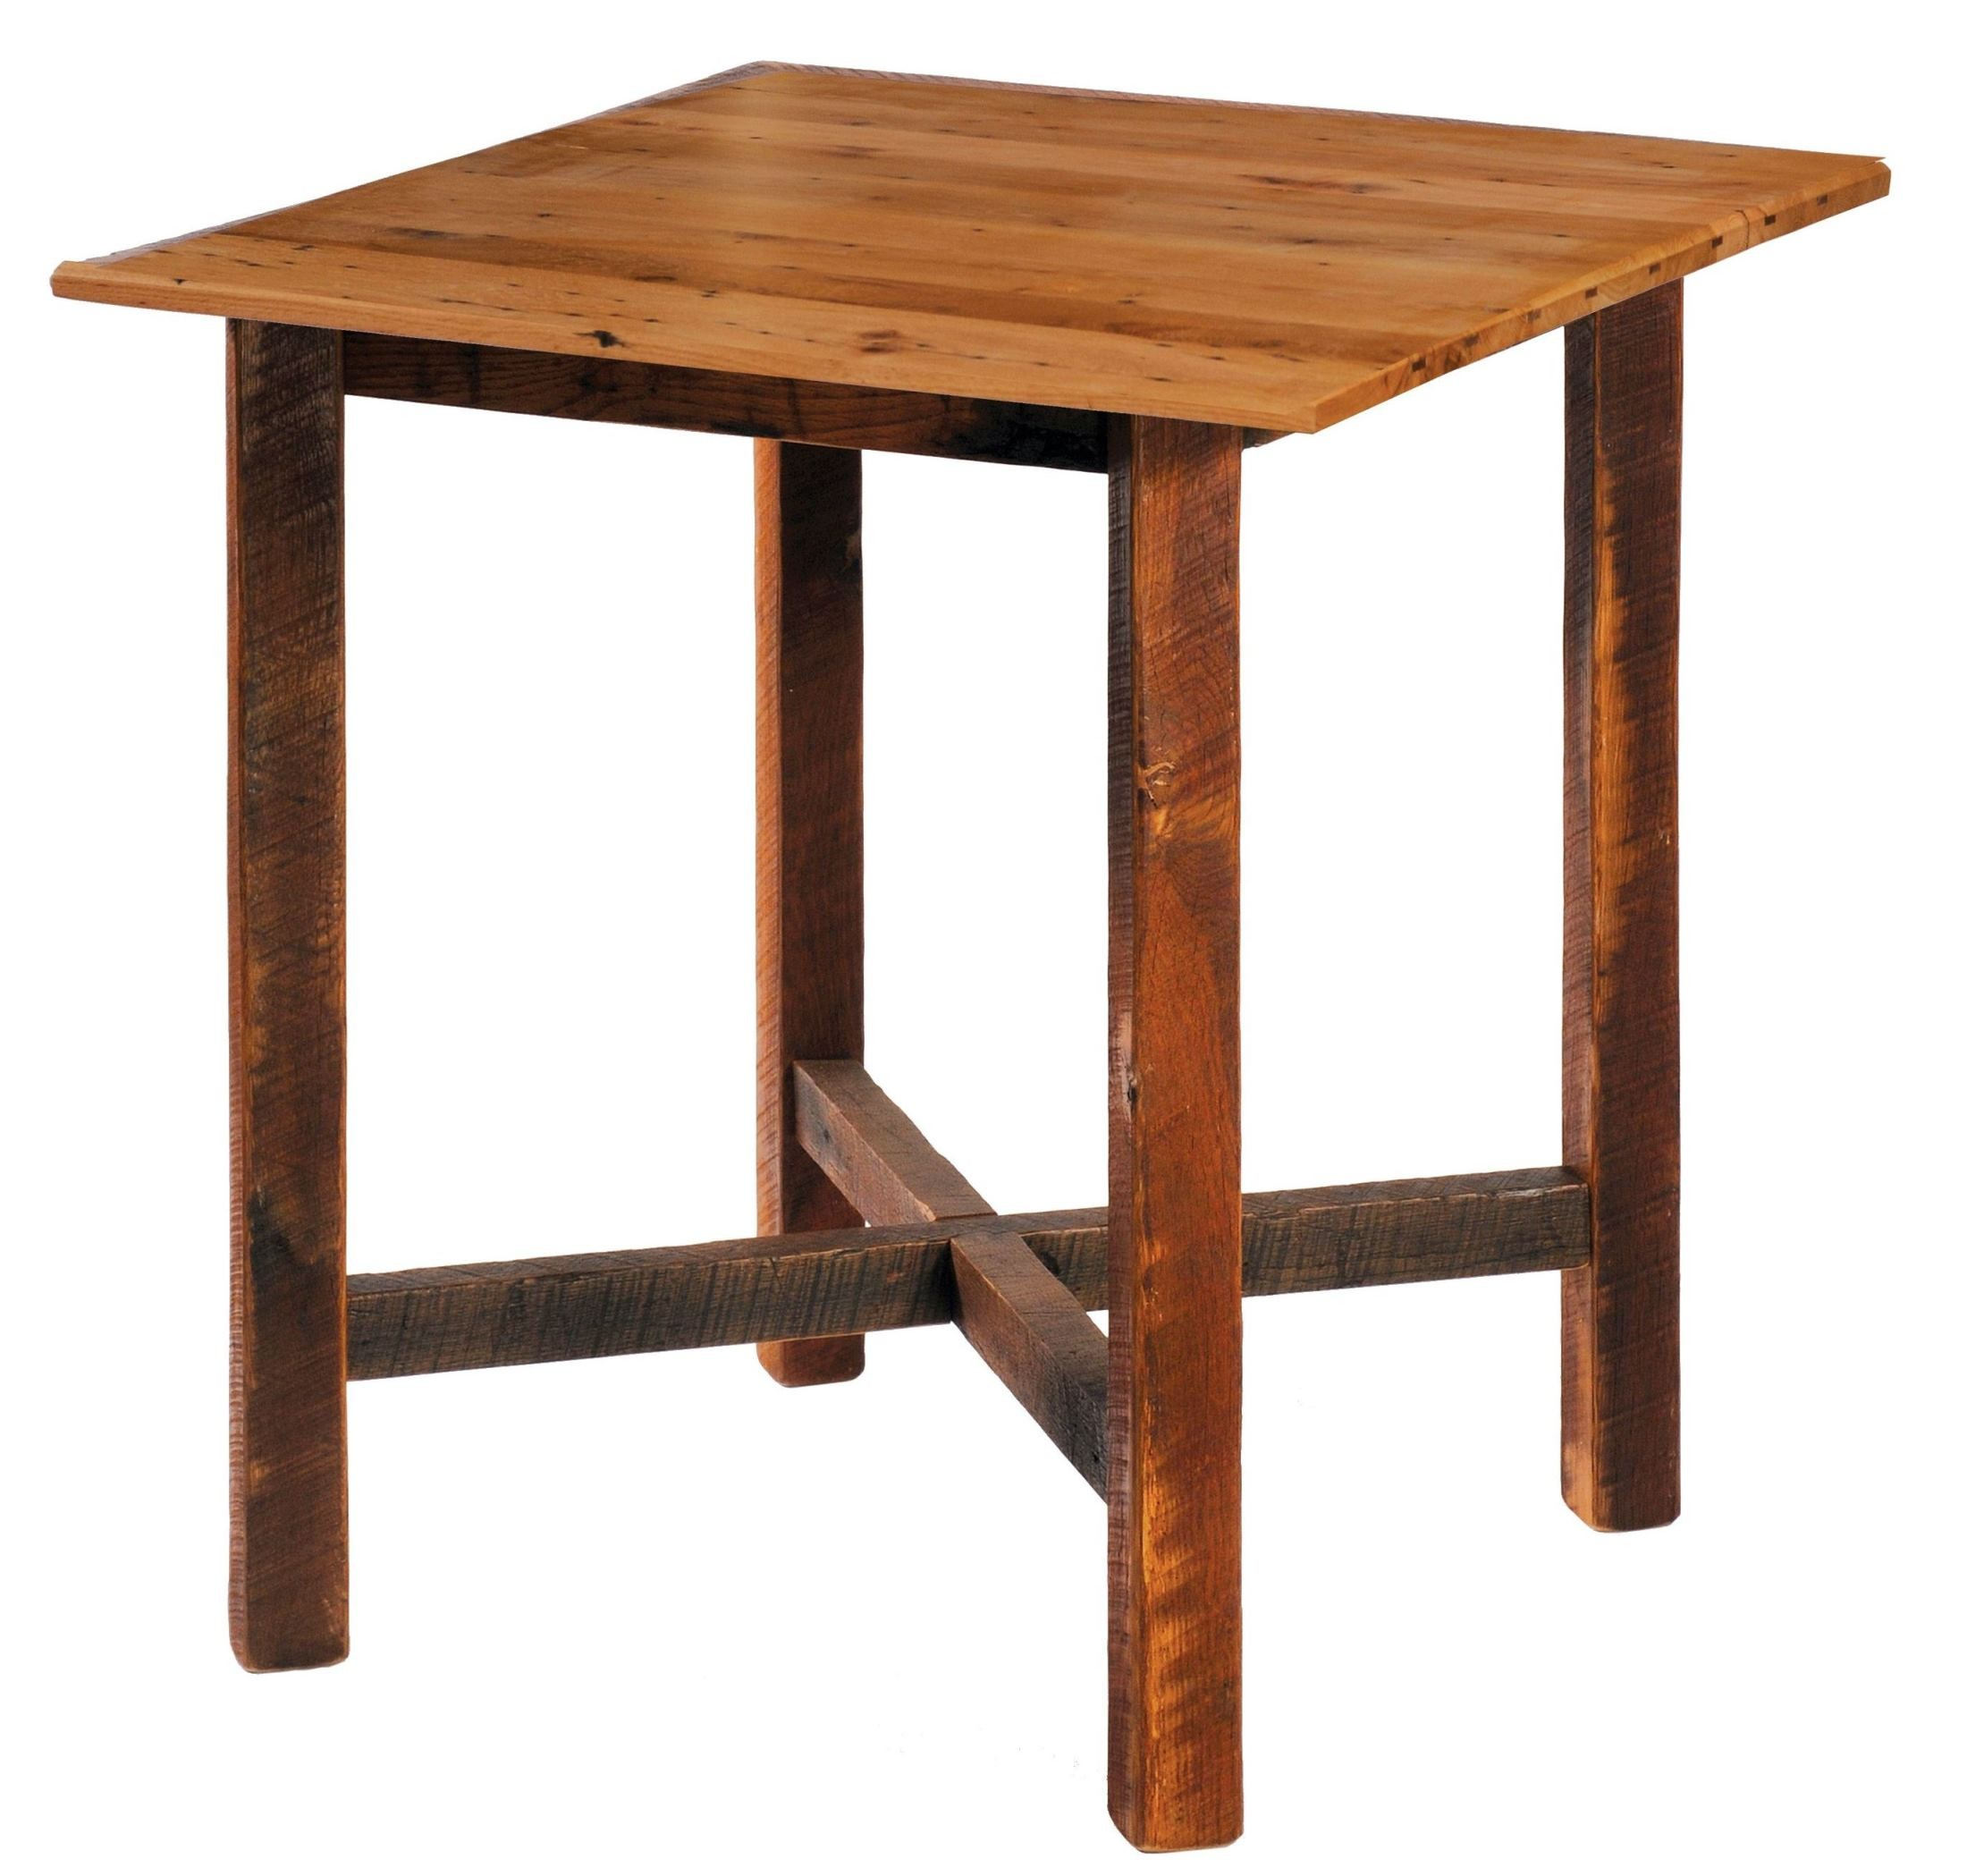 Barnwood 40 antique oak top square pub table from fireside lodge barnwood 40 antique oak top square pub table from fireside lodge b16208 ao coleman furniture watchthetrailerfo